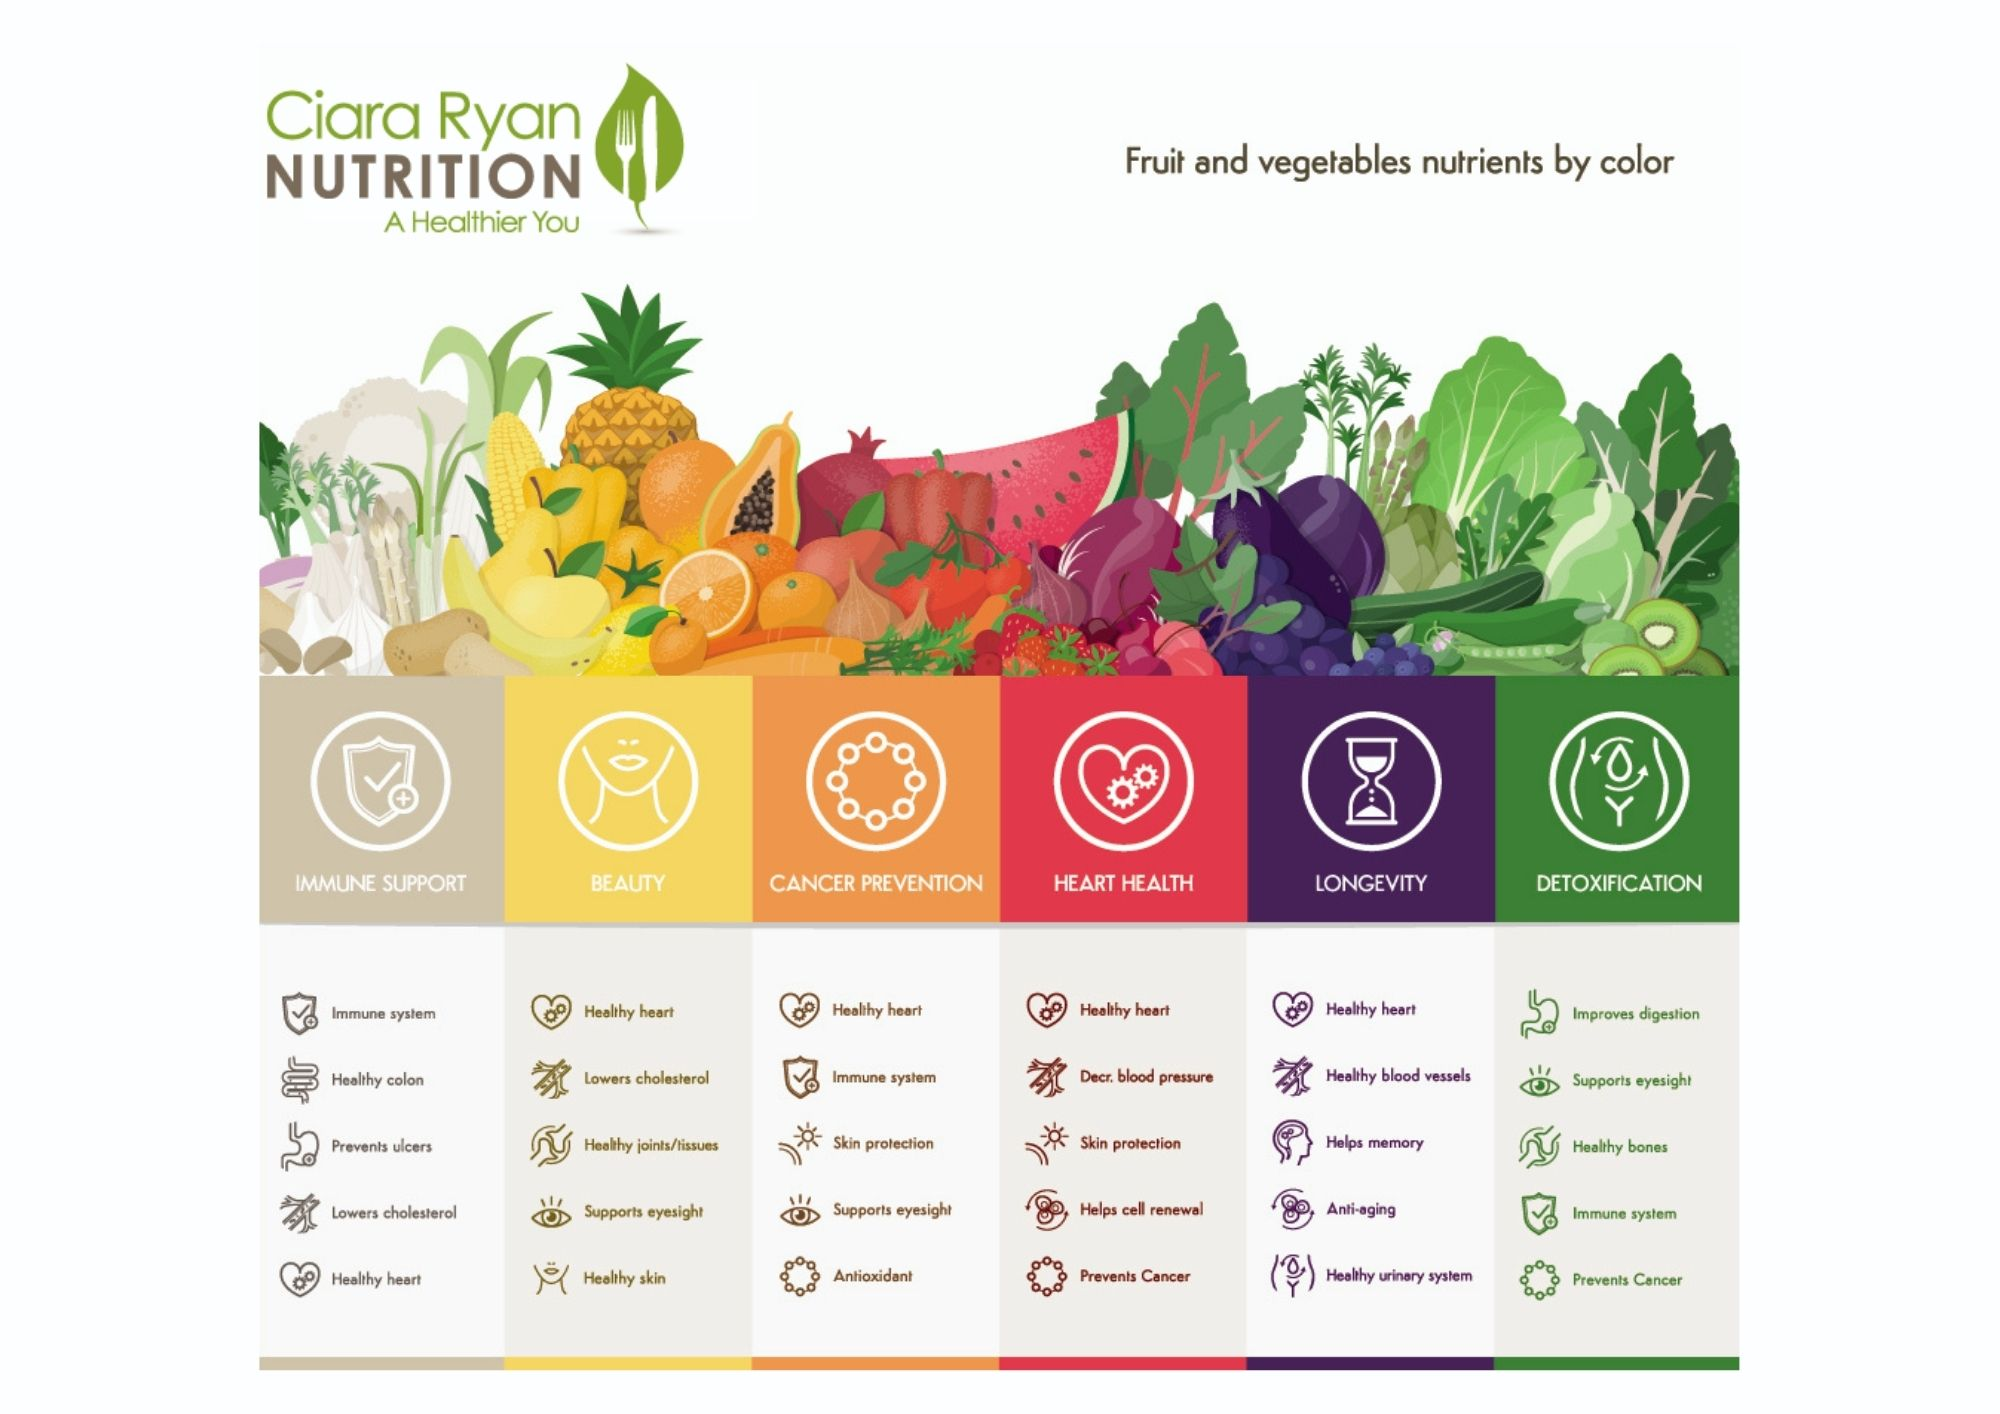 eat the rainbow chart outlining the health benefits of a variety of fruit and vegetables